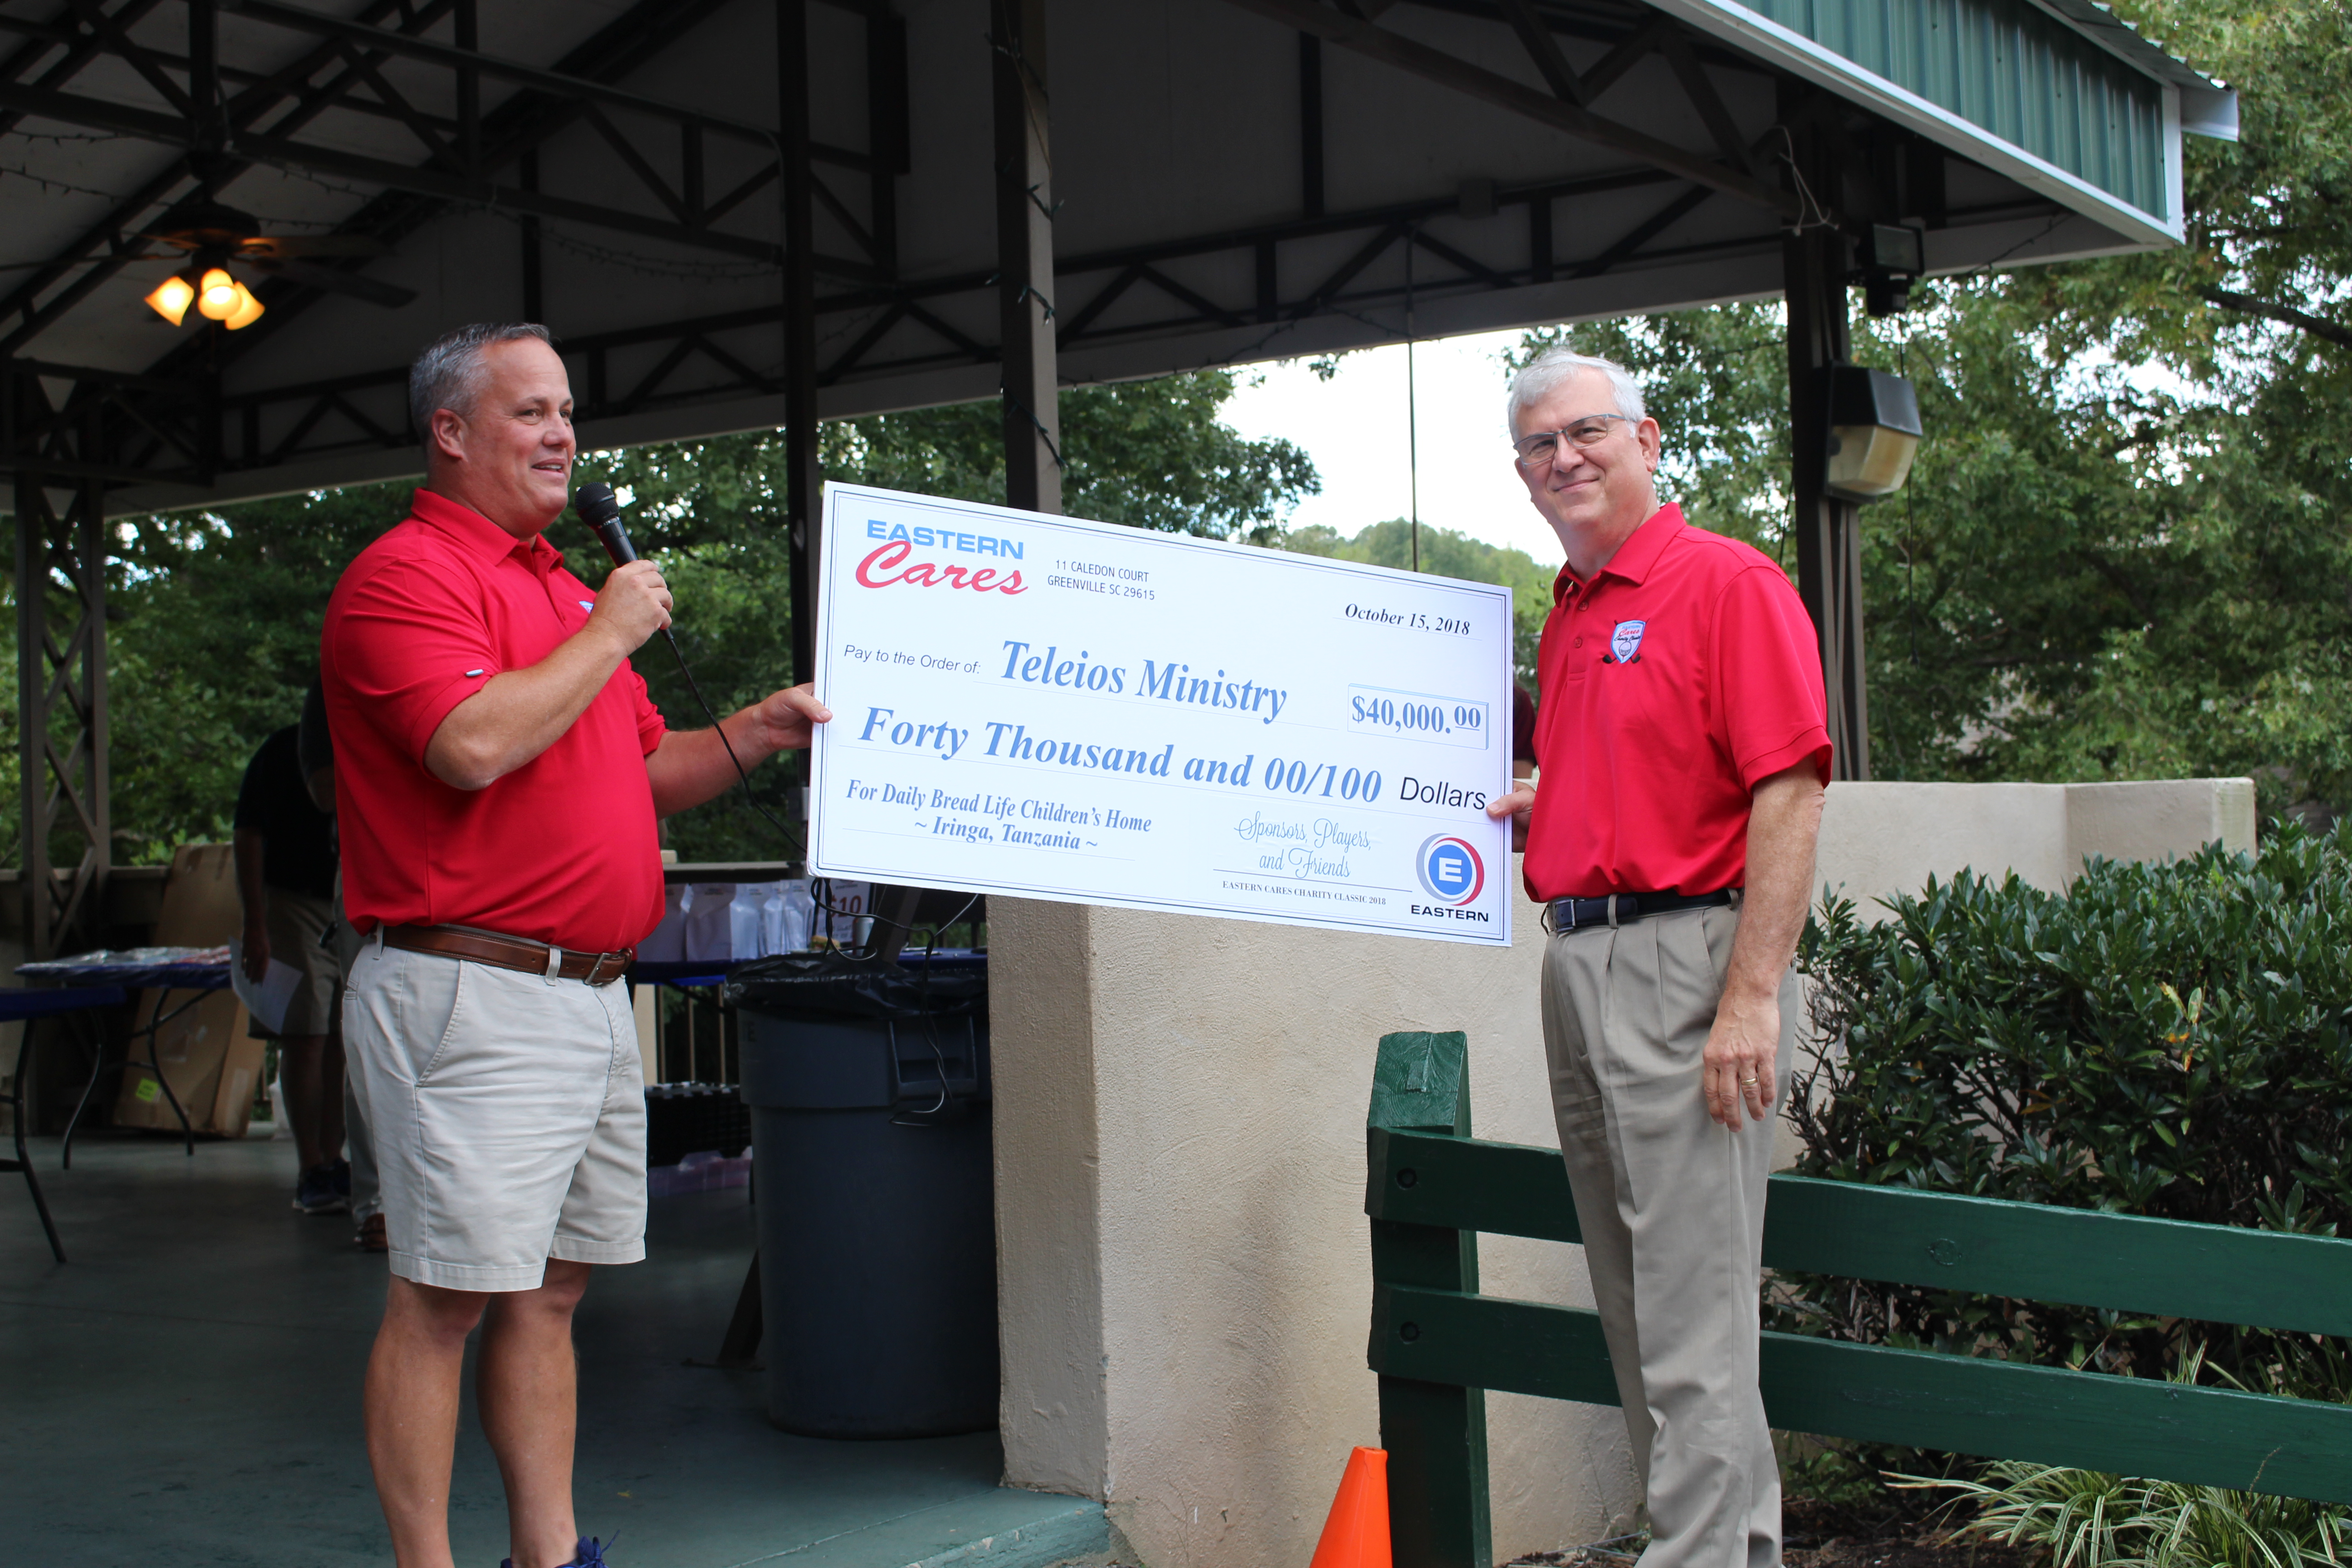 Eastern Cares Charity Classic Check Presentation with David Kay and Floyd Parker